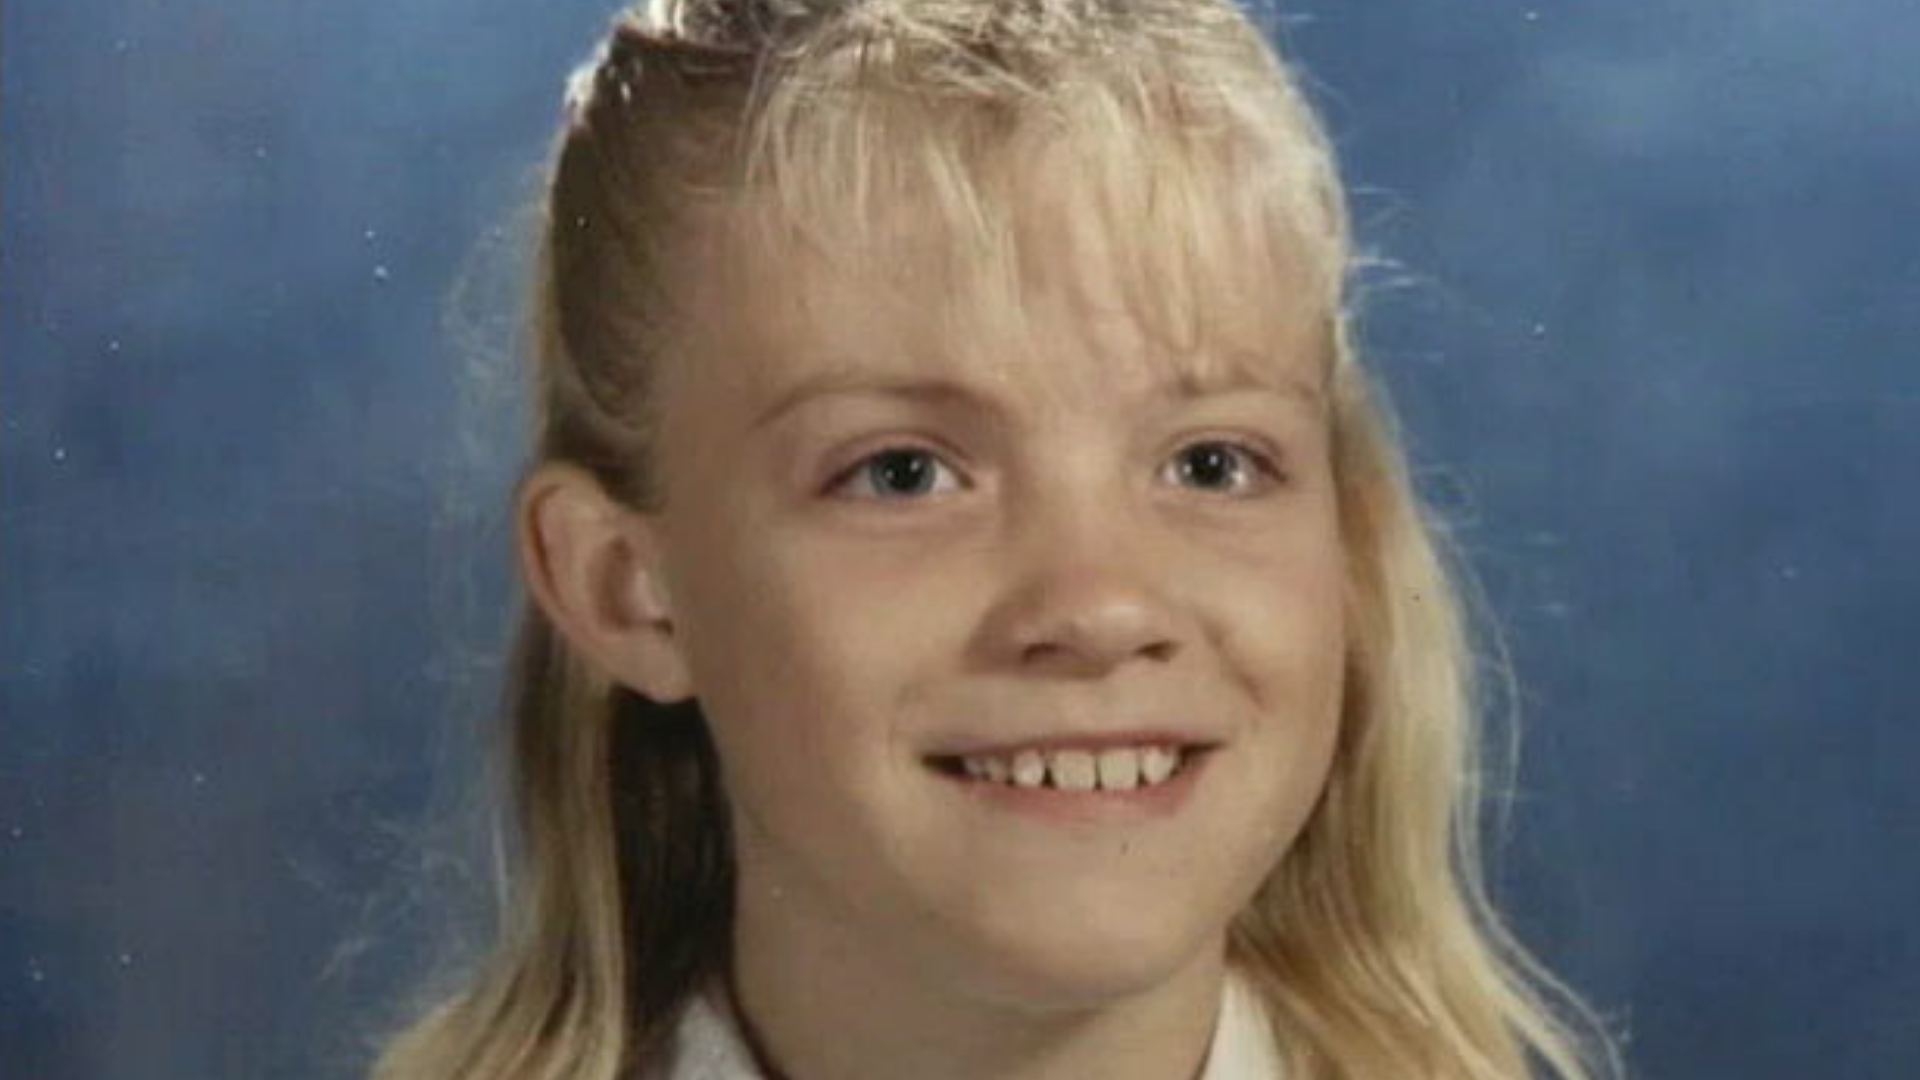 Man charged with murder in connection to 1988 kidnapping of Michaela Garecht three decades after she vanished from California supermarket